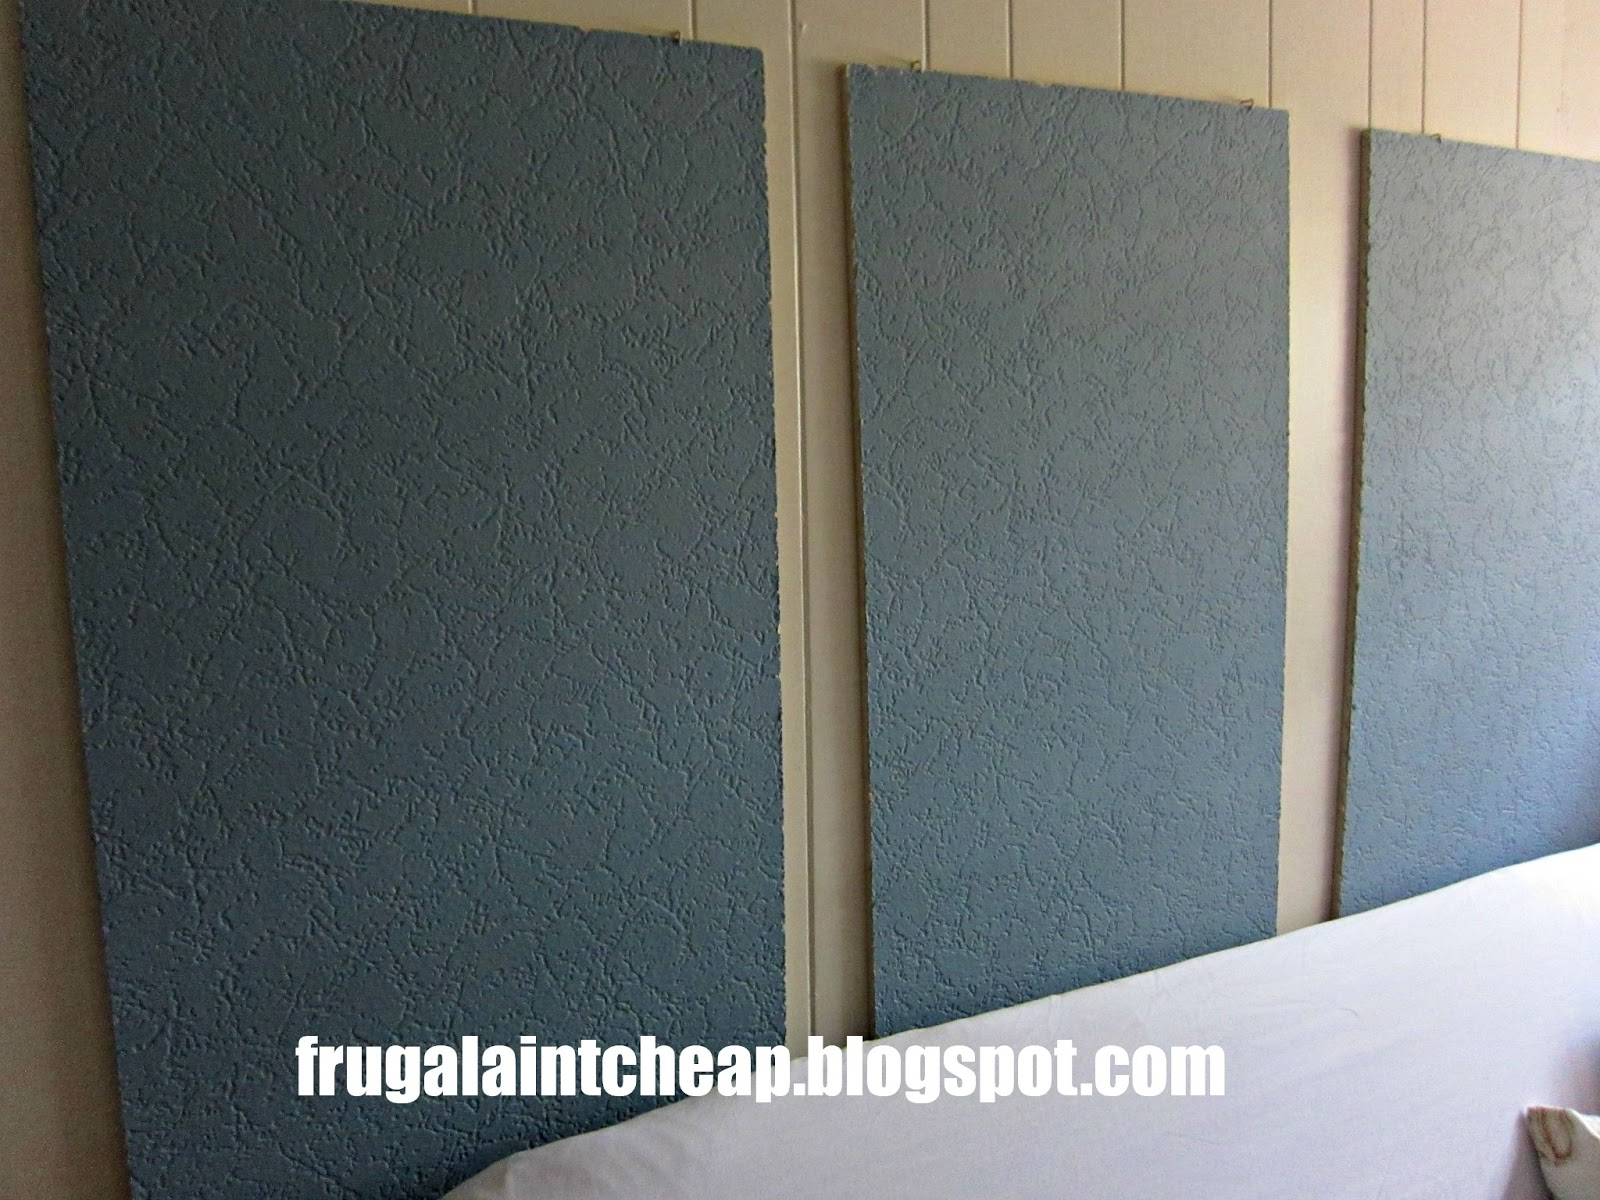 Soundproofing A Room With Existing Walls